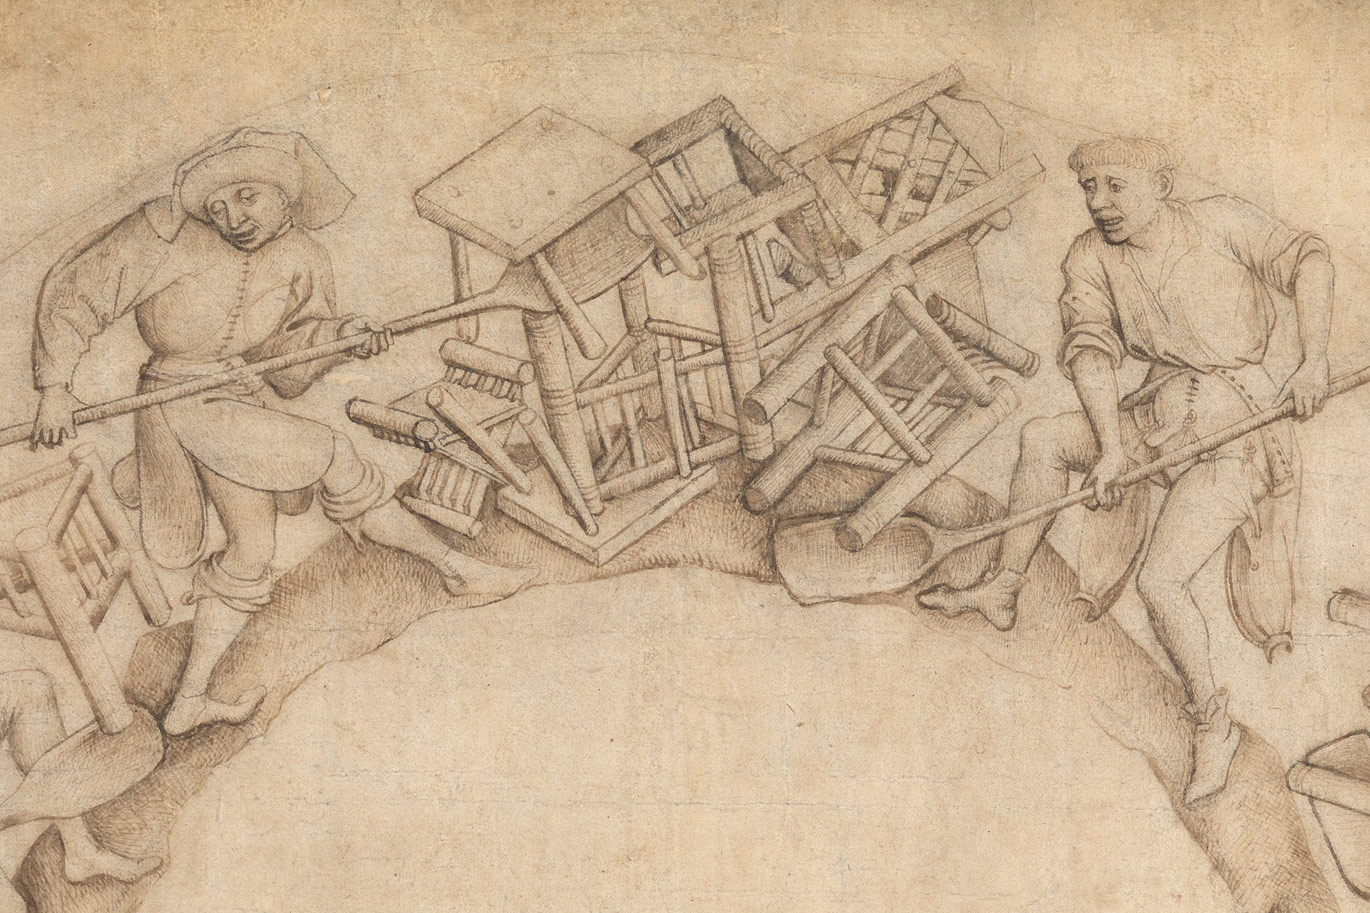 Men Shoveling Chairs by Circle of Rogier van der Weyden